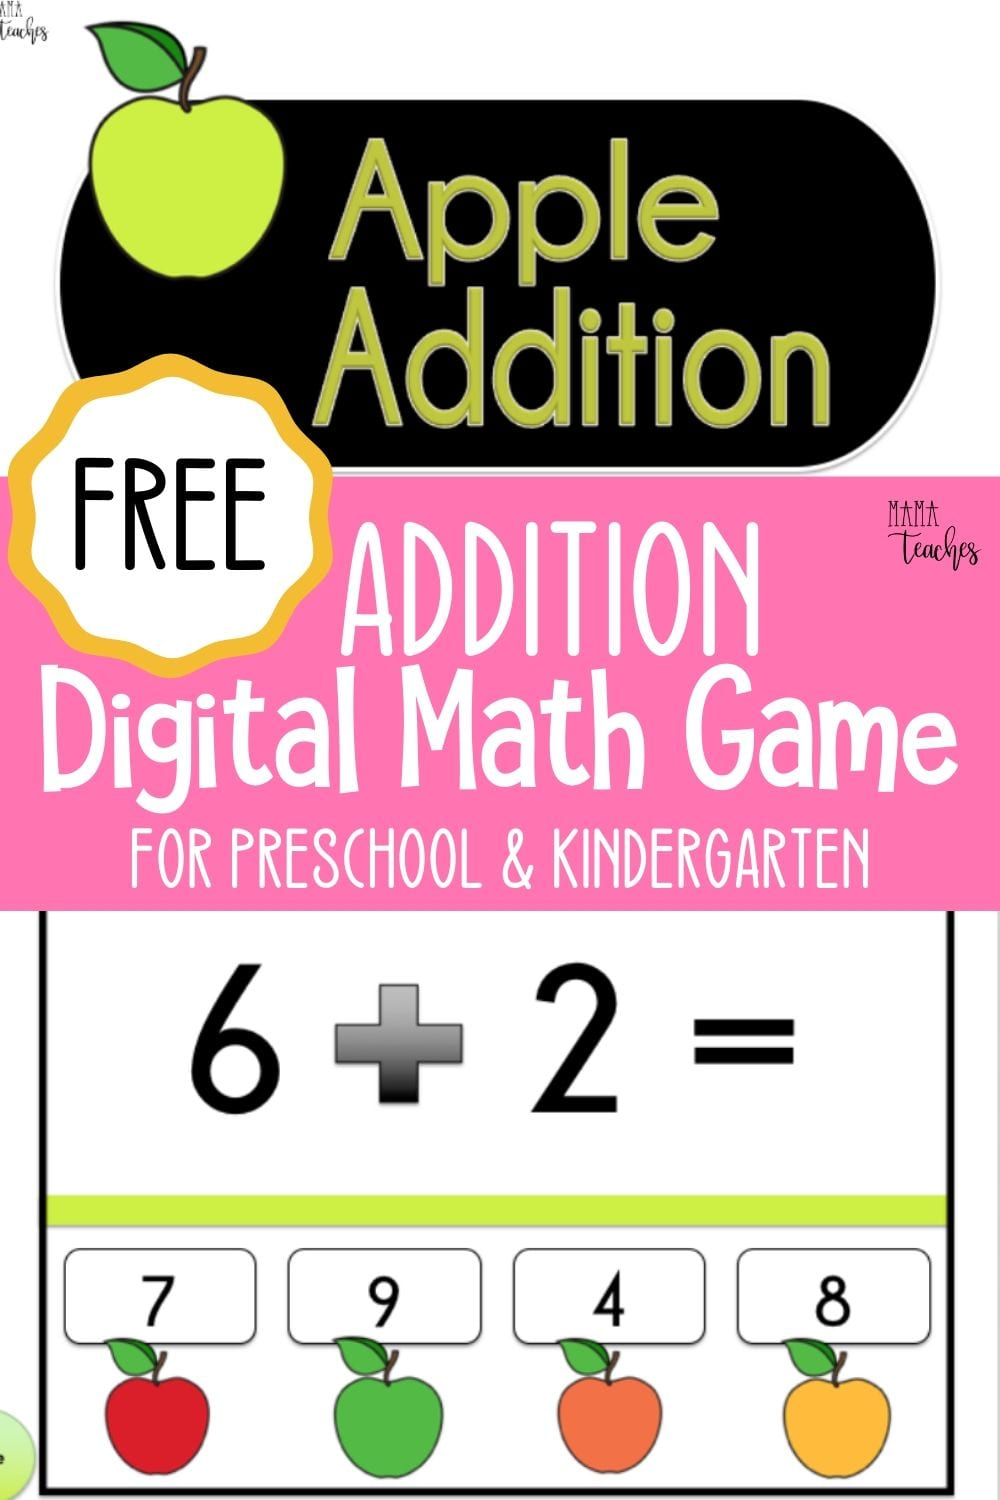 Free Addition Digital Math Game for Preschool and Kindergarten - MamaTeaches.com